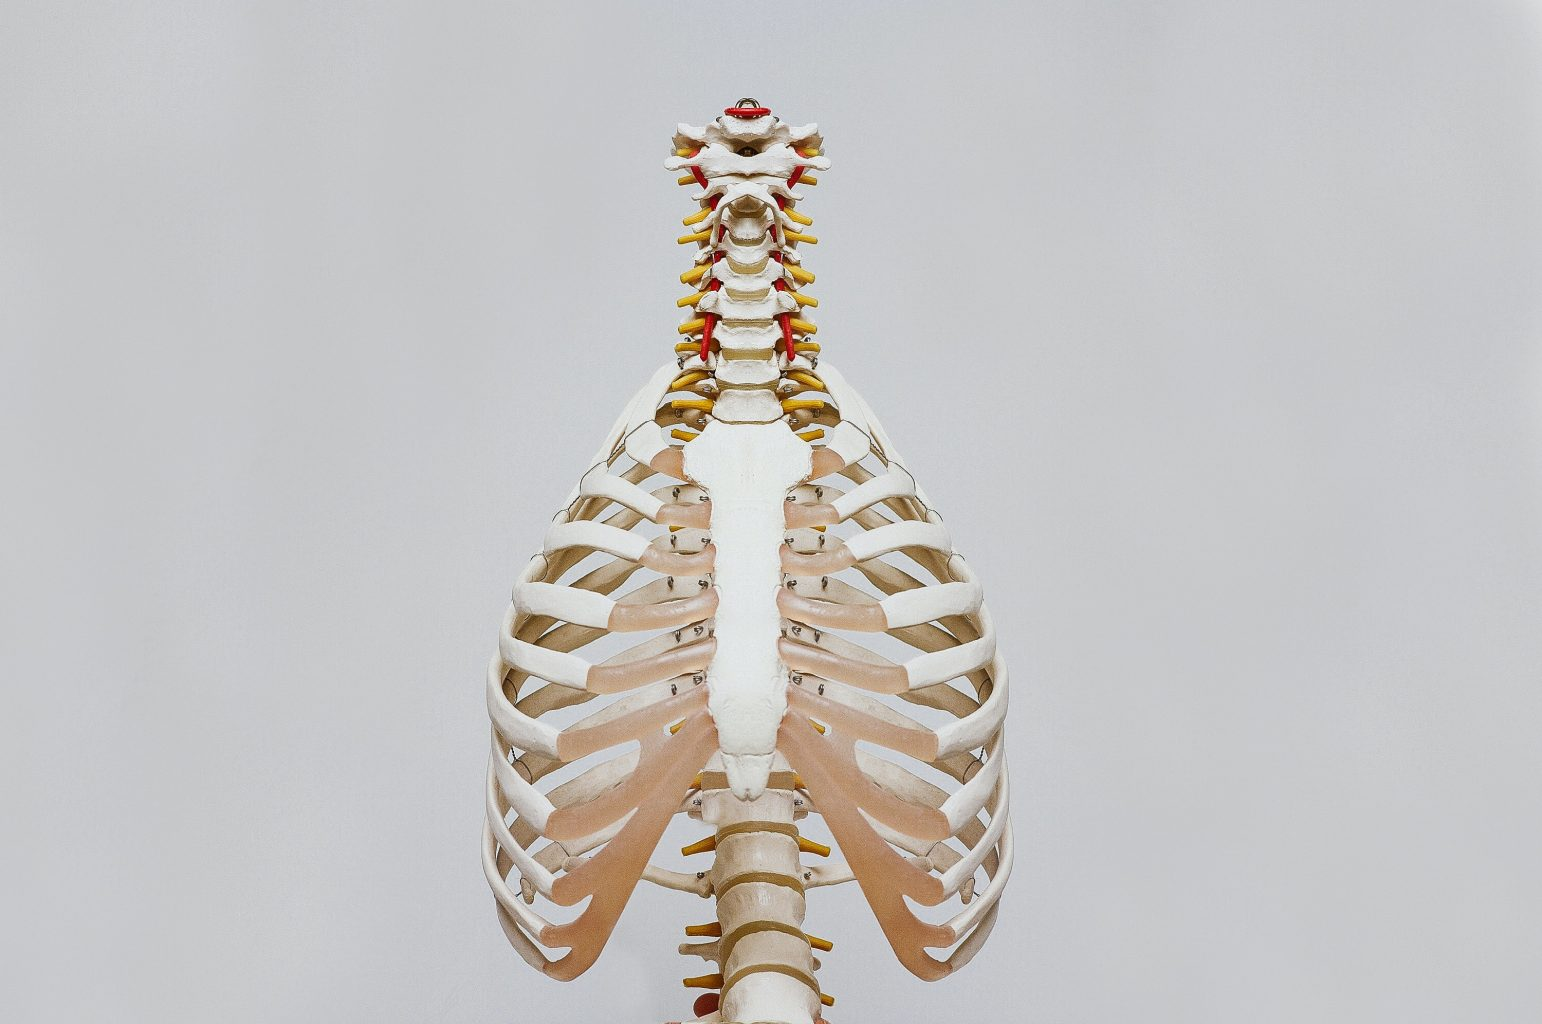 Bare skeleton torso Photo by Nino Liverani on Unsplash